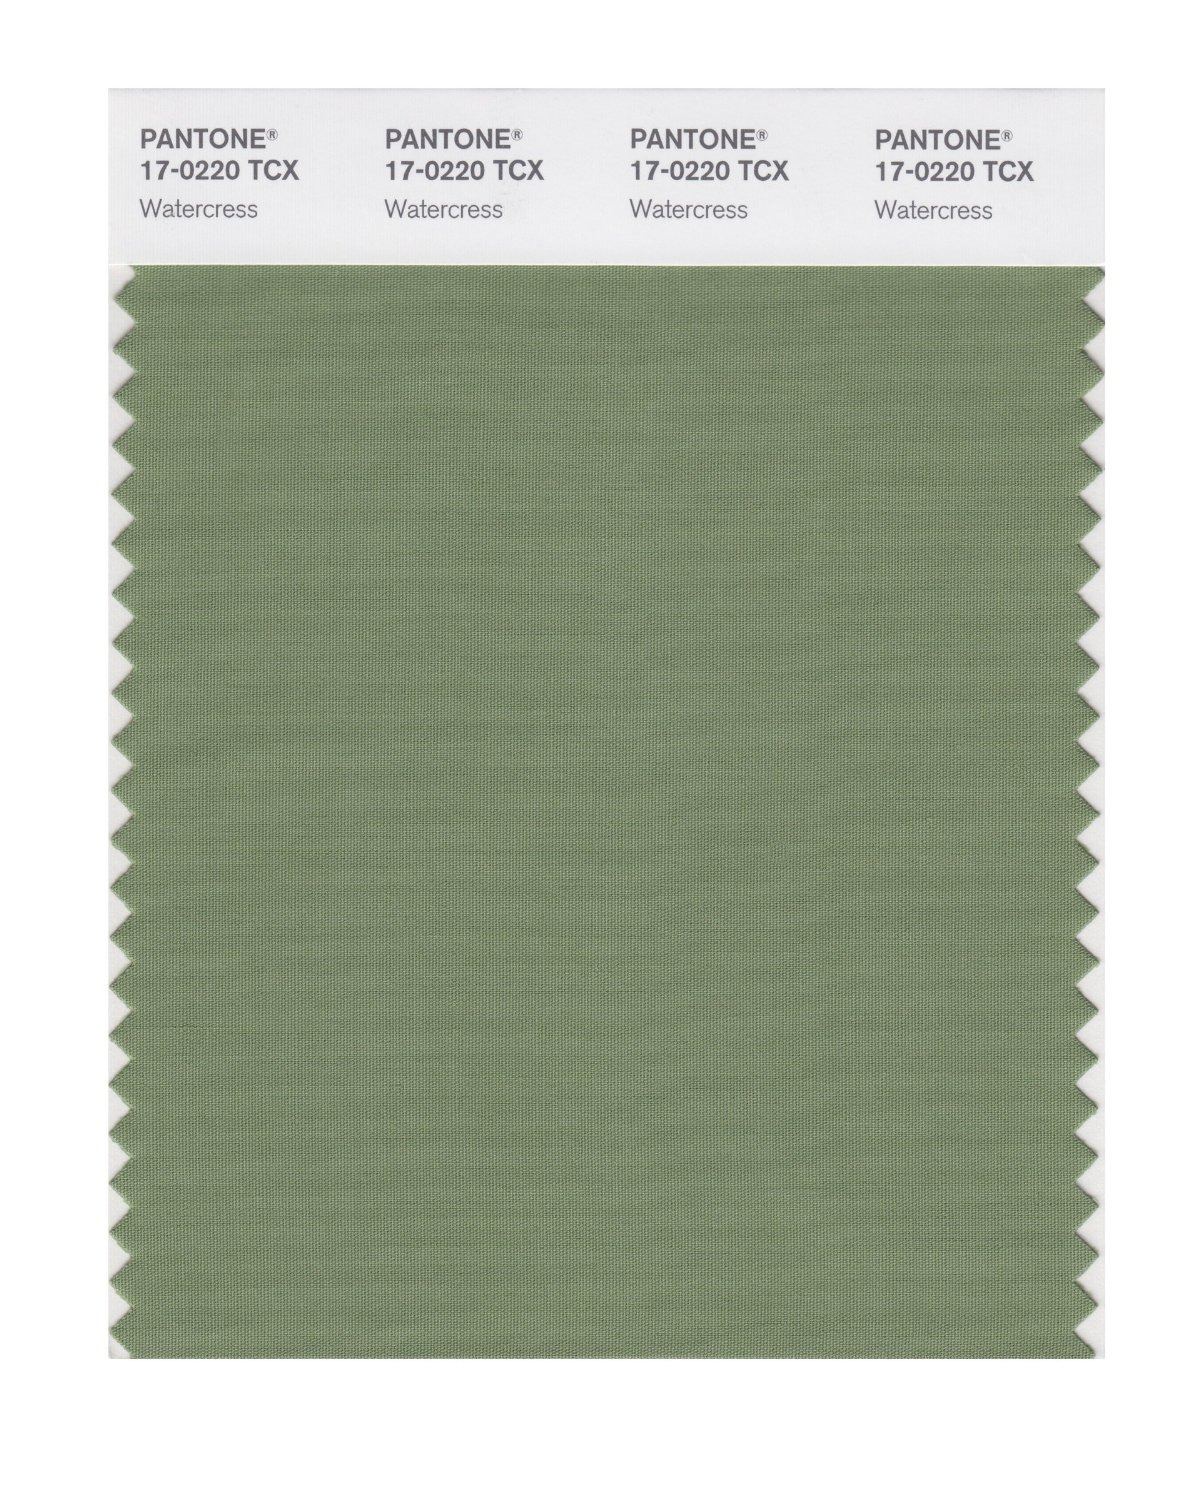 Pantone Smart Swatch 17-0220 Water Cress